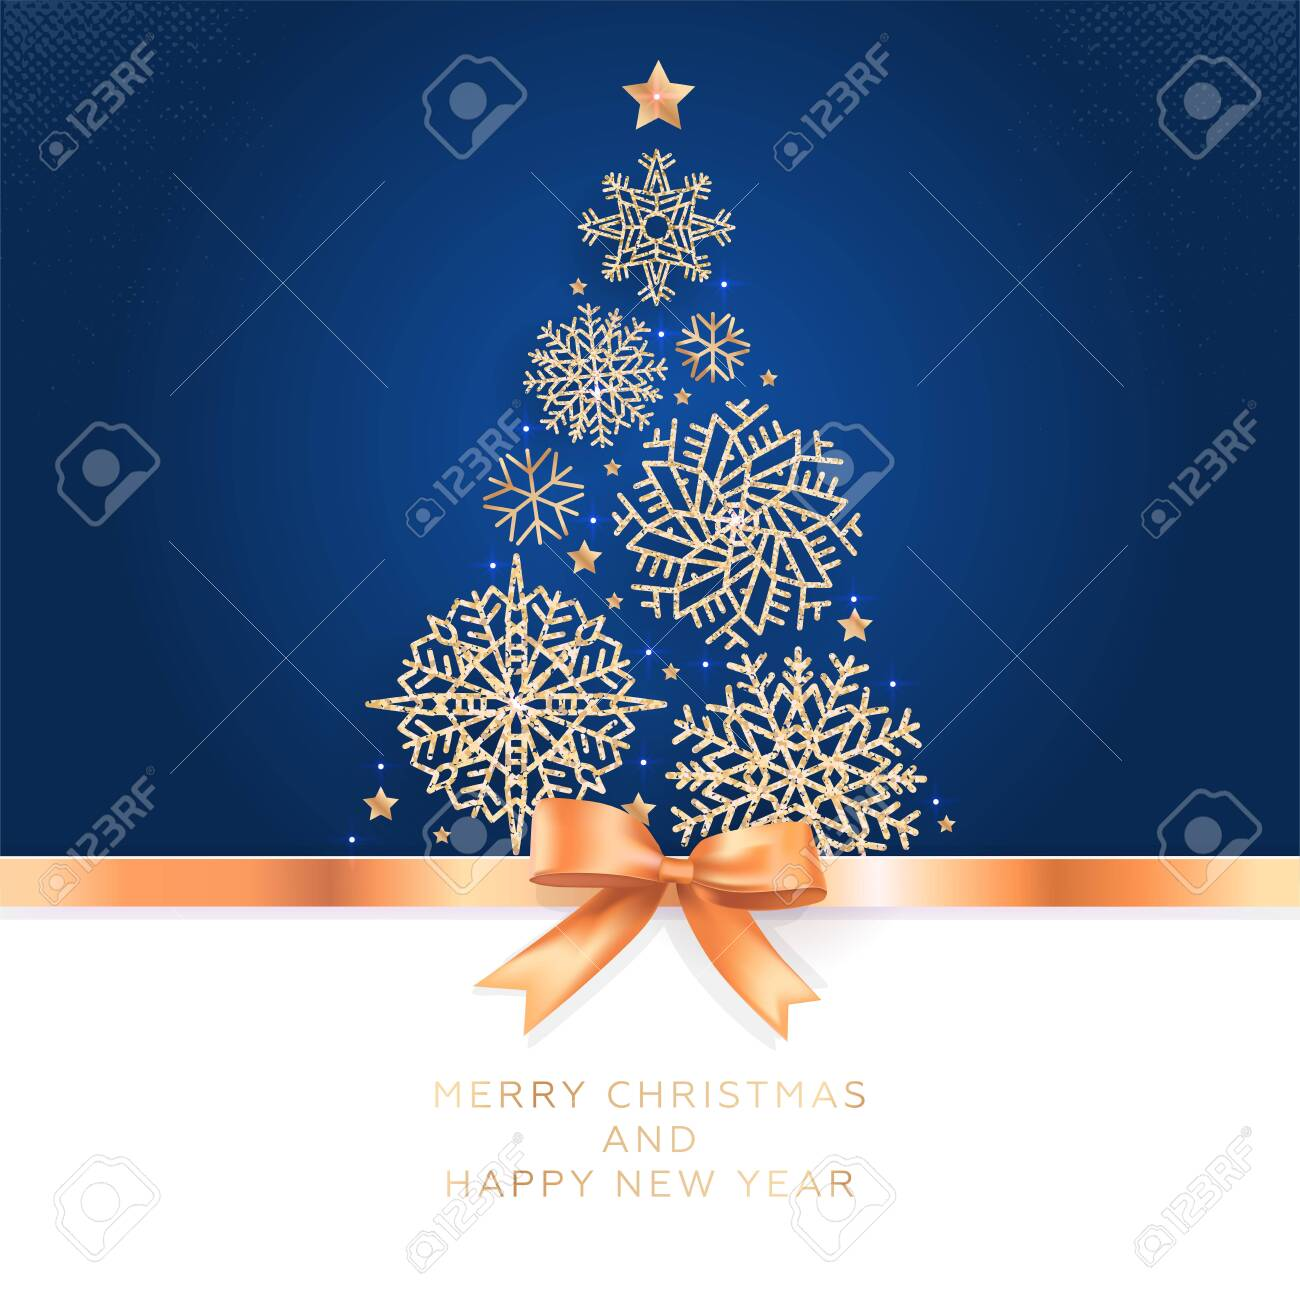 Christmas and New Year. Vector greeting card with Christmas tree of glittering snowflakes and golden bow. - 133564564